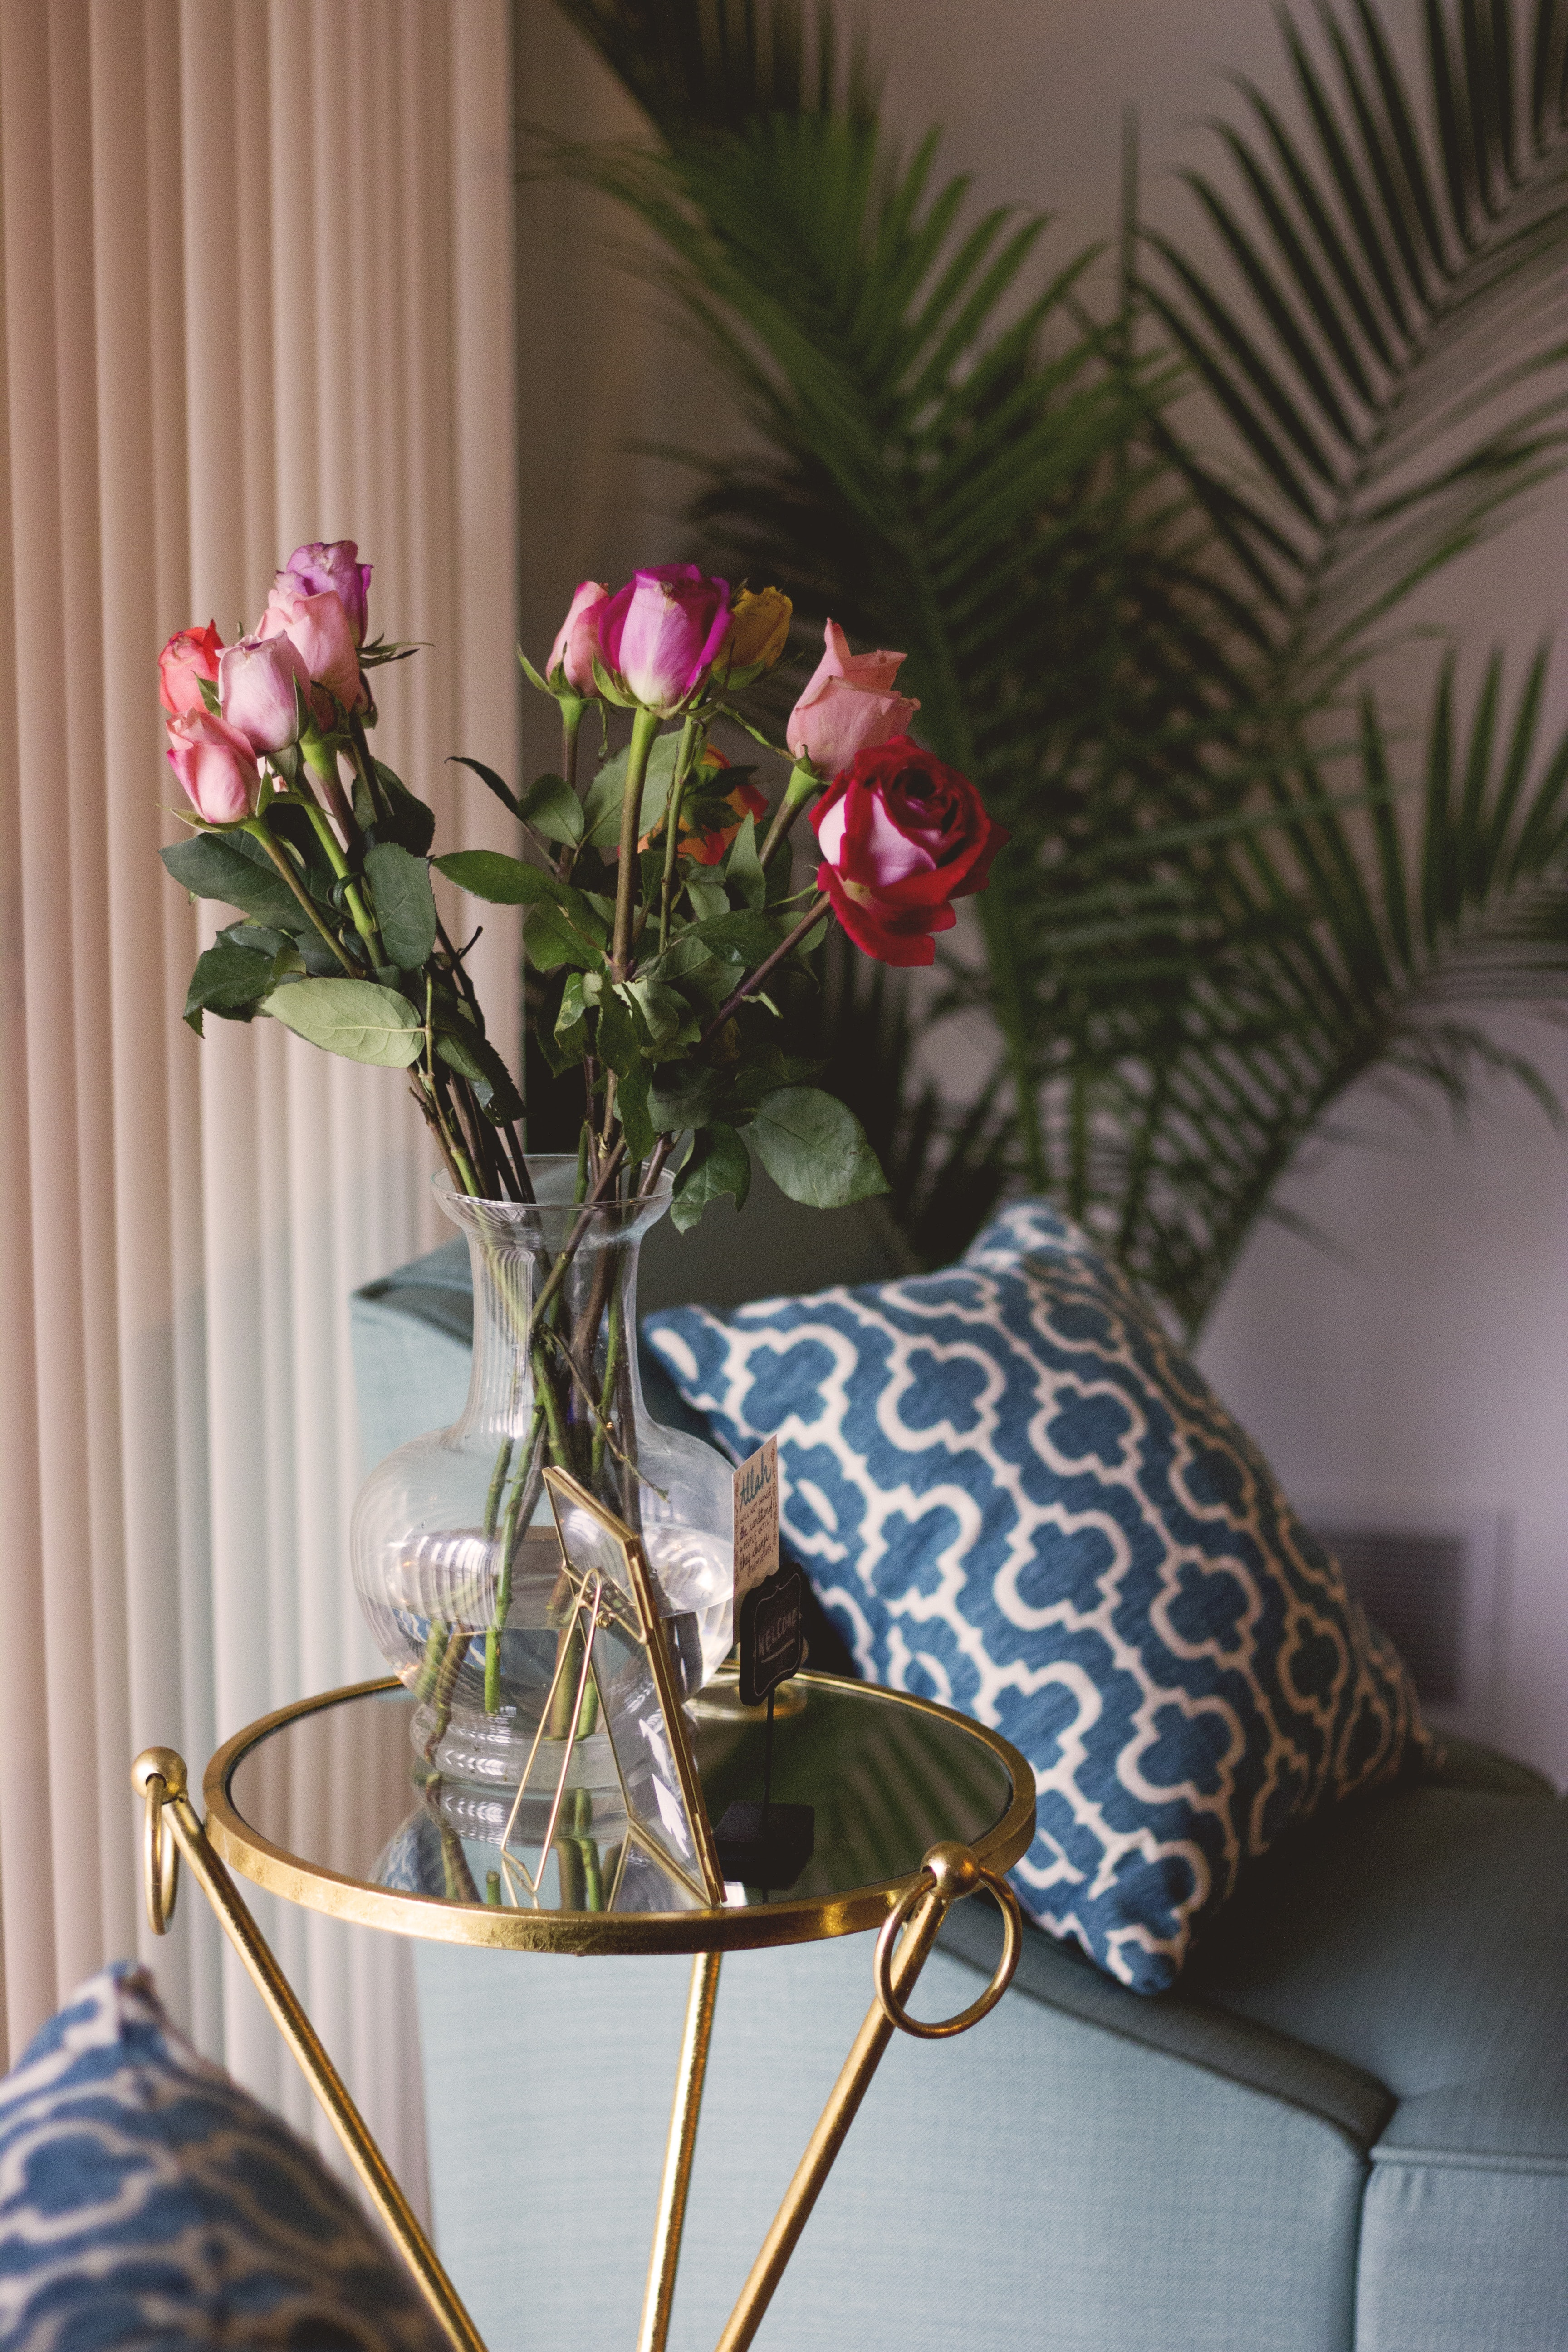 red and pink roses in clear glass vase